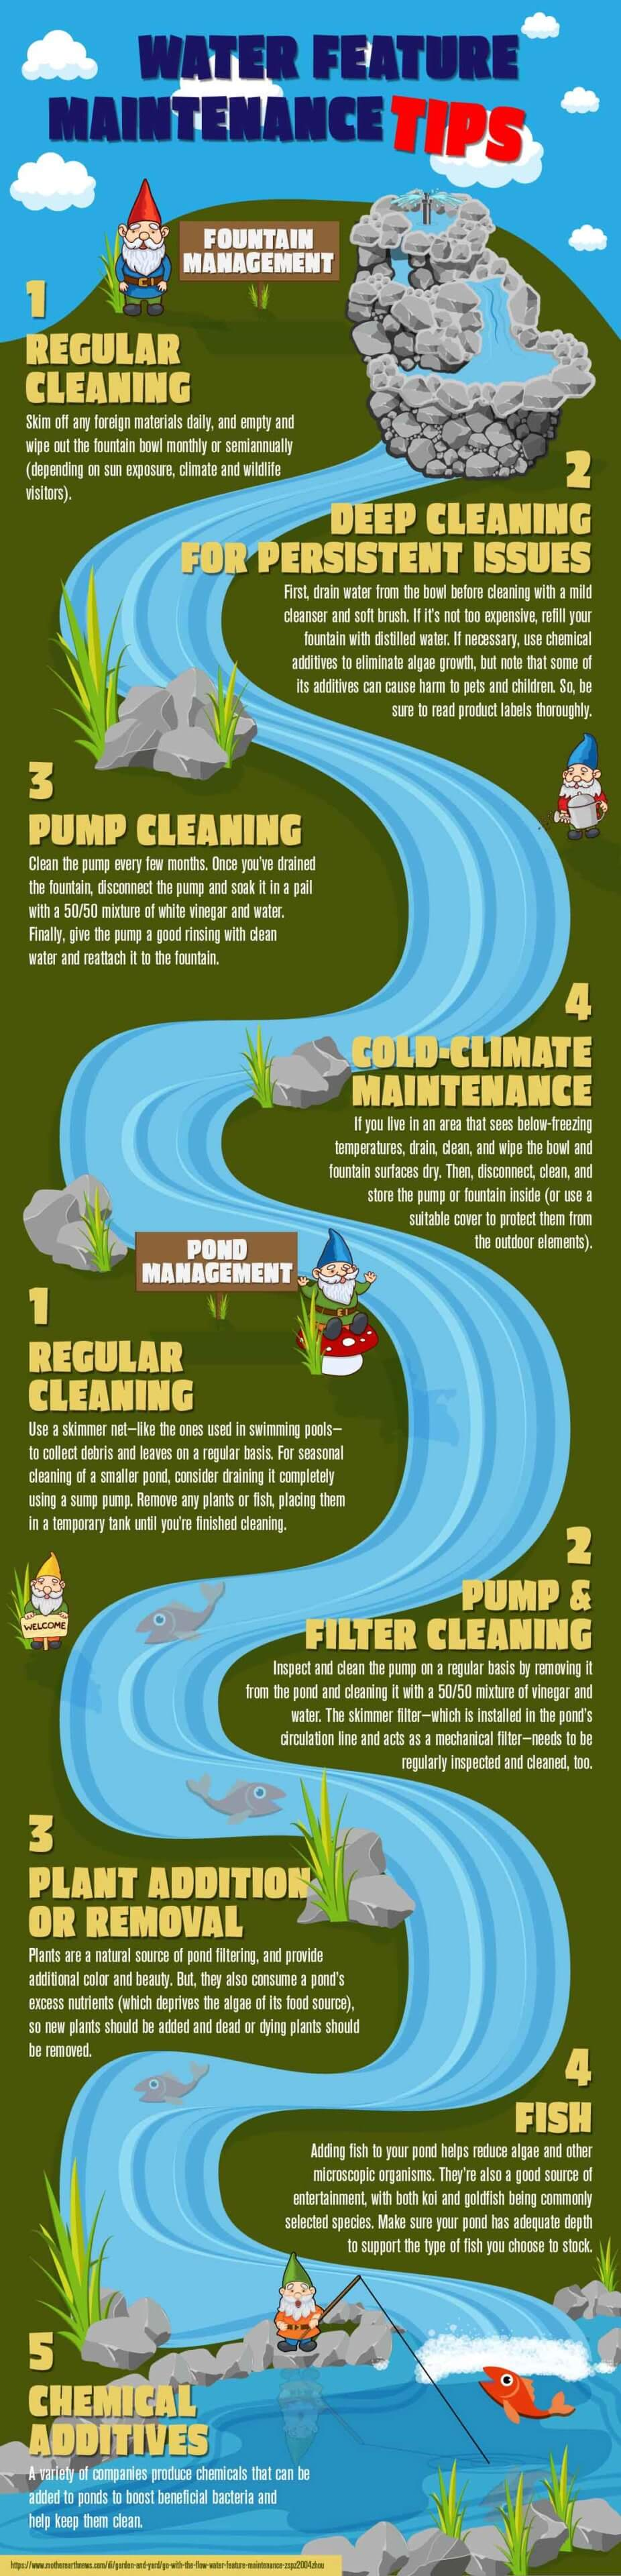 INFOGRAPHIC: Water feature maintenance tips